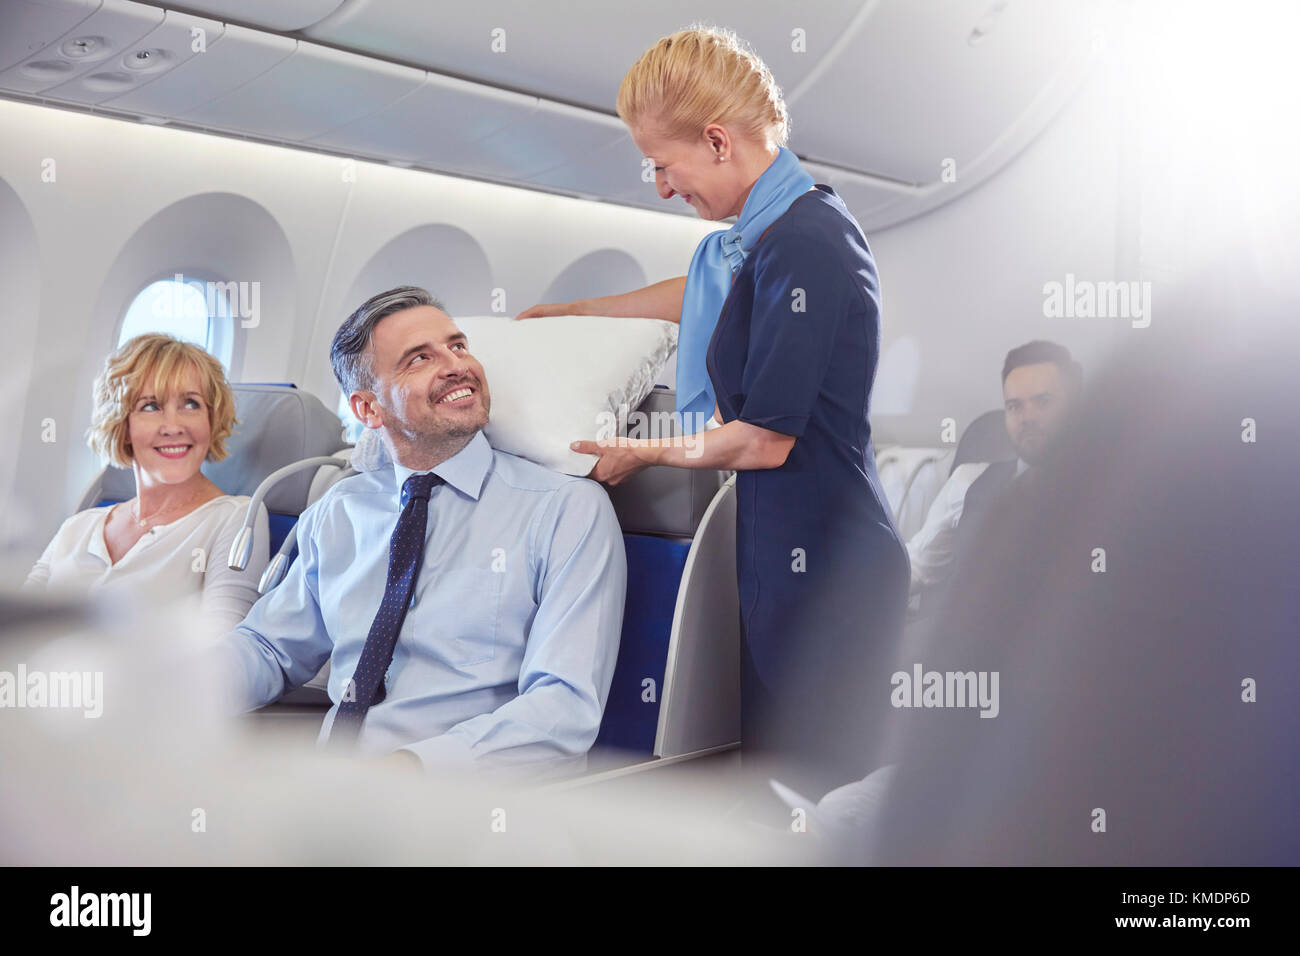 Smiling flight attendant adjusting pillow for businessman in first class on airplane - Stock Image